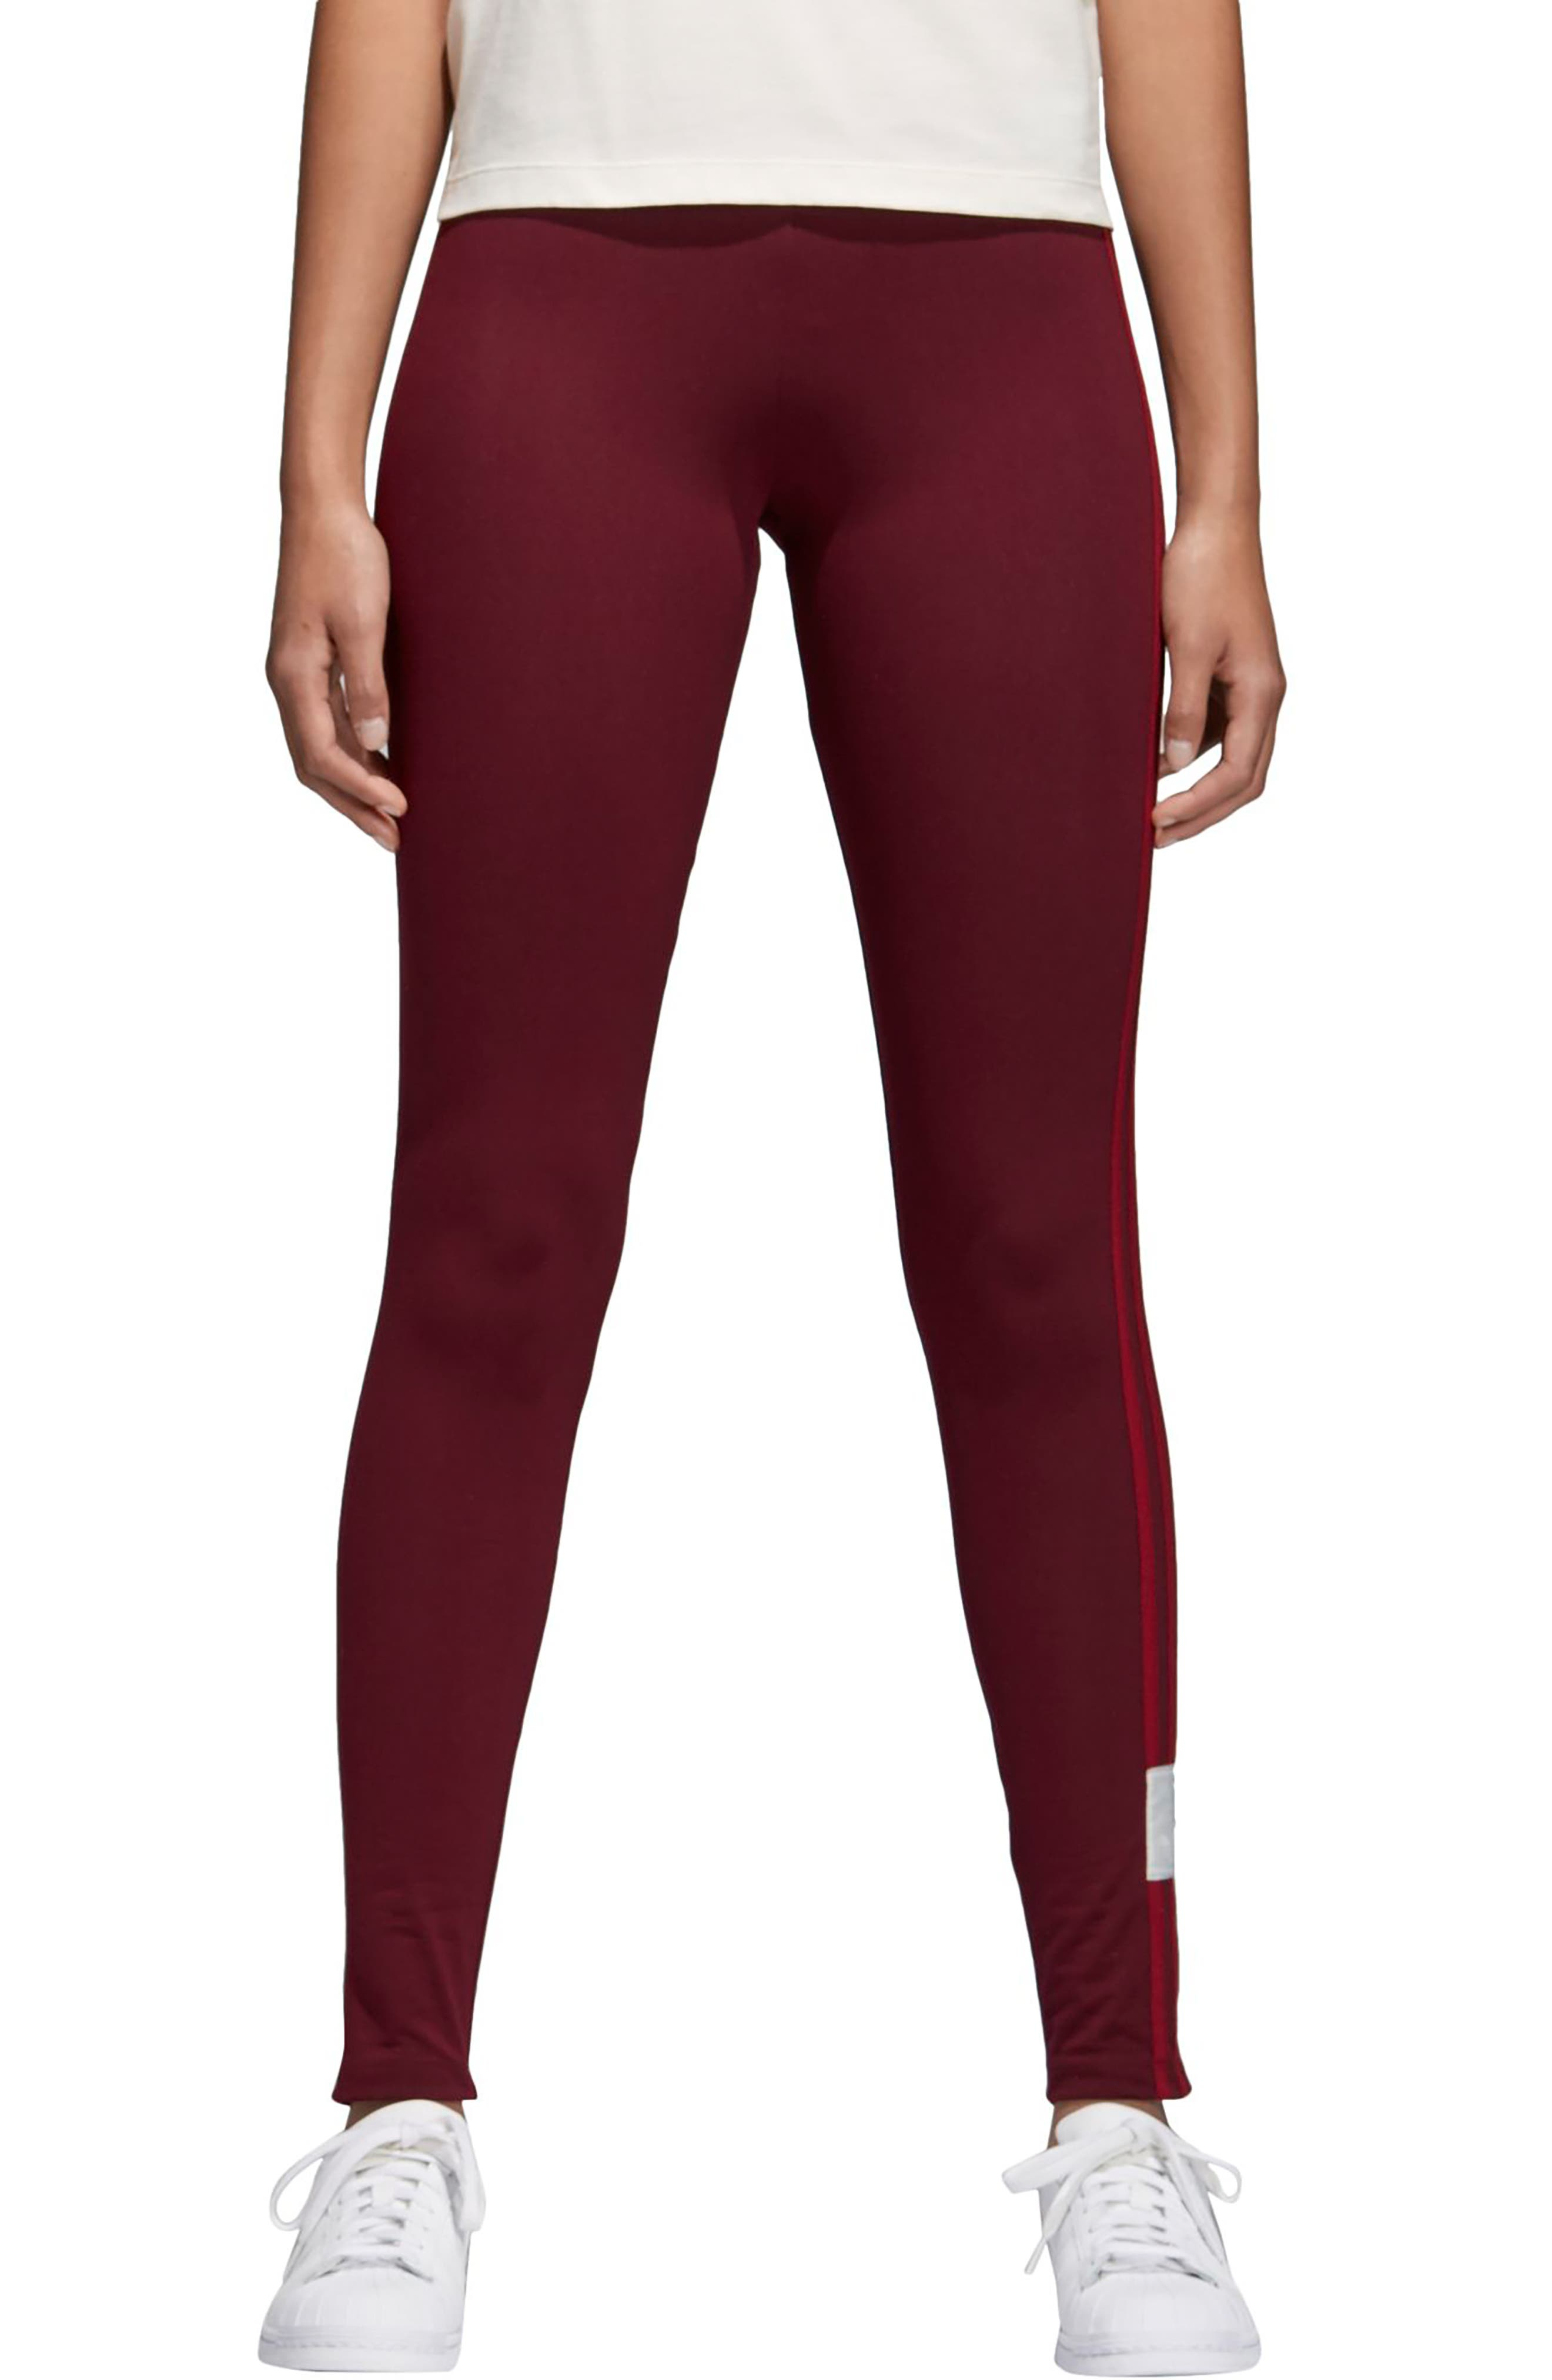 Originals Adibreak Tights,                             Main thumbnail 1, color,                             Maroon